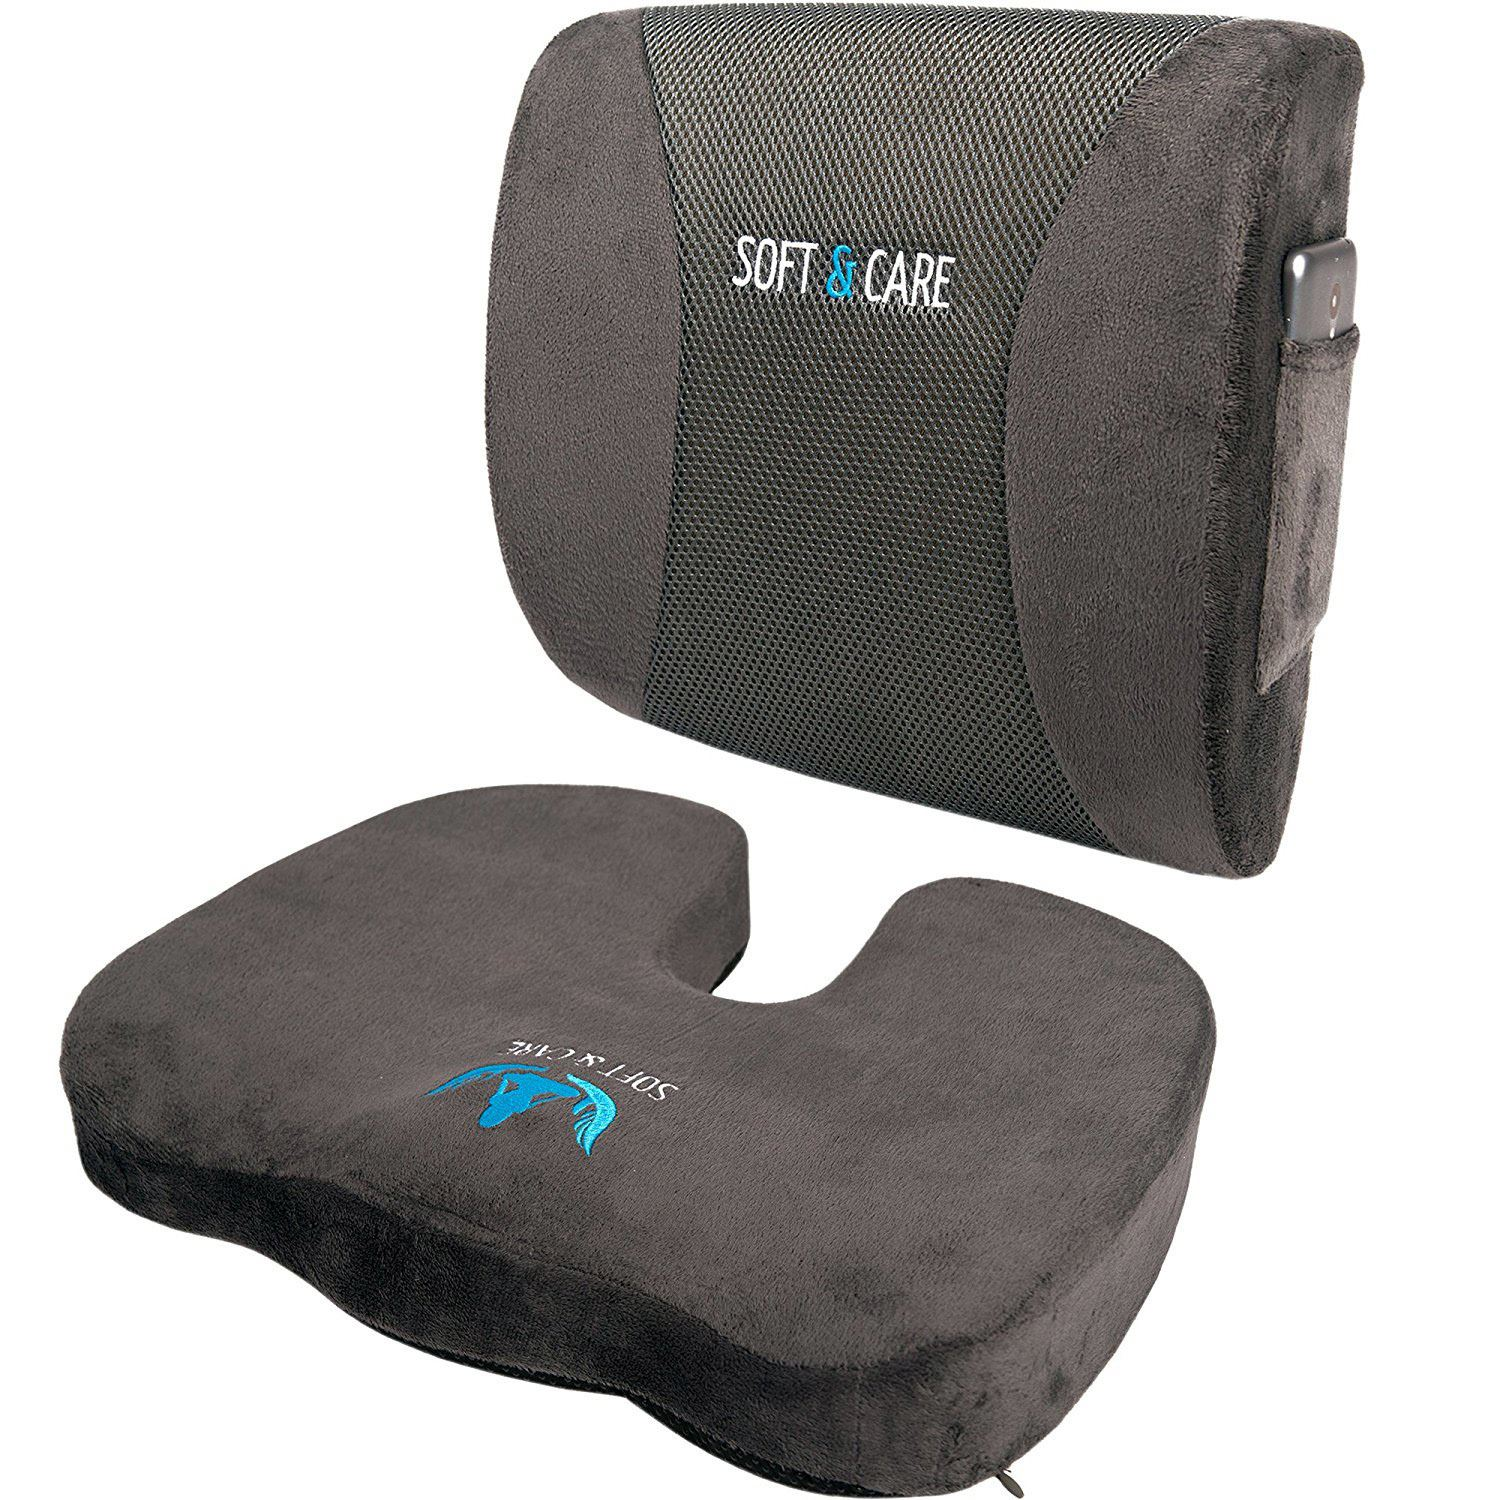 Soft And Care Seat Cushion Review